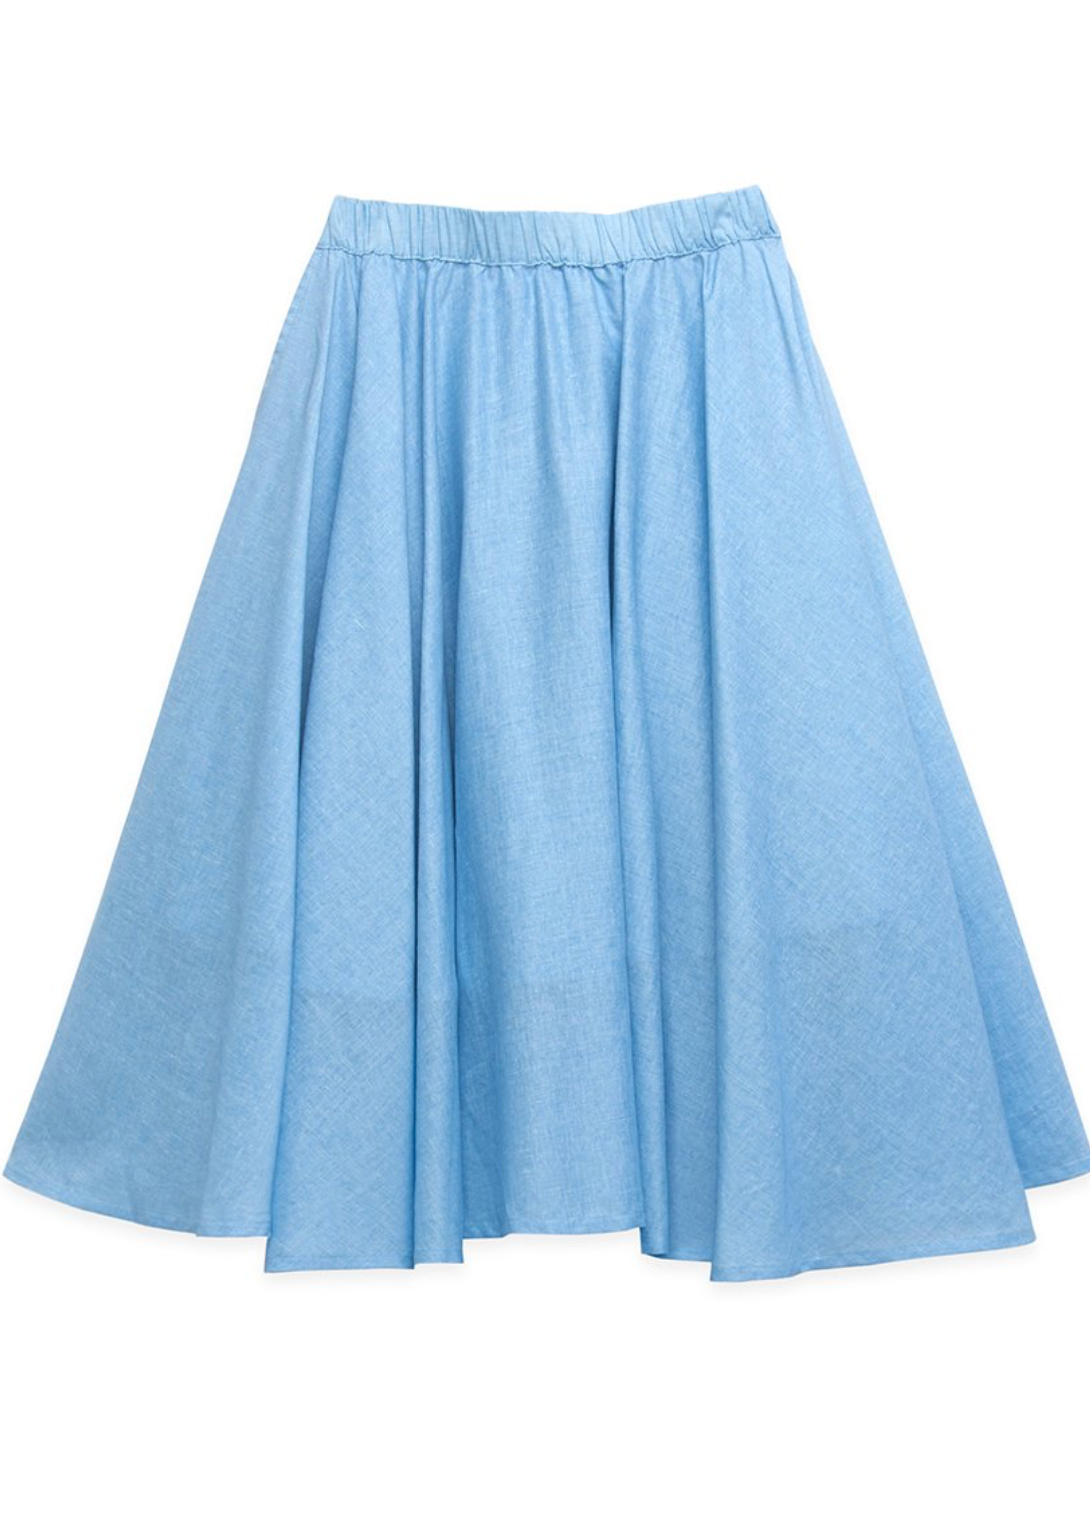 (New) Jamaica Blue Skirt